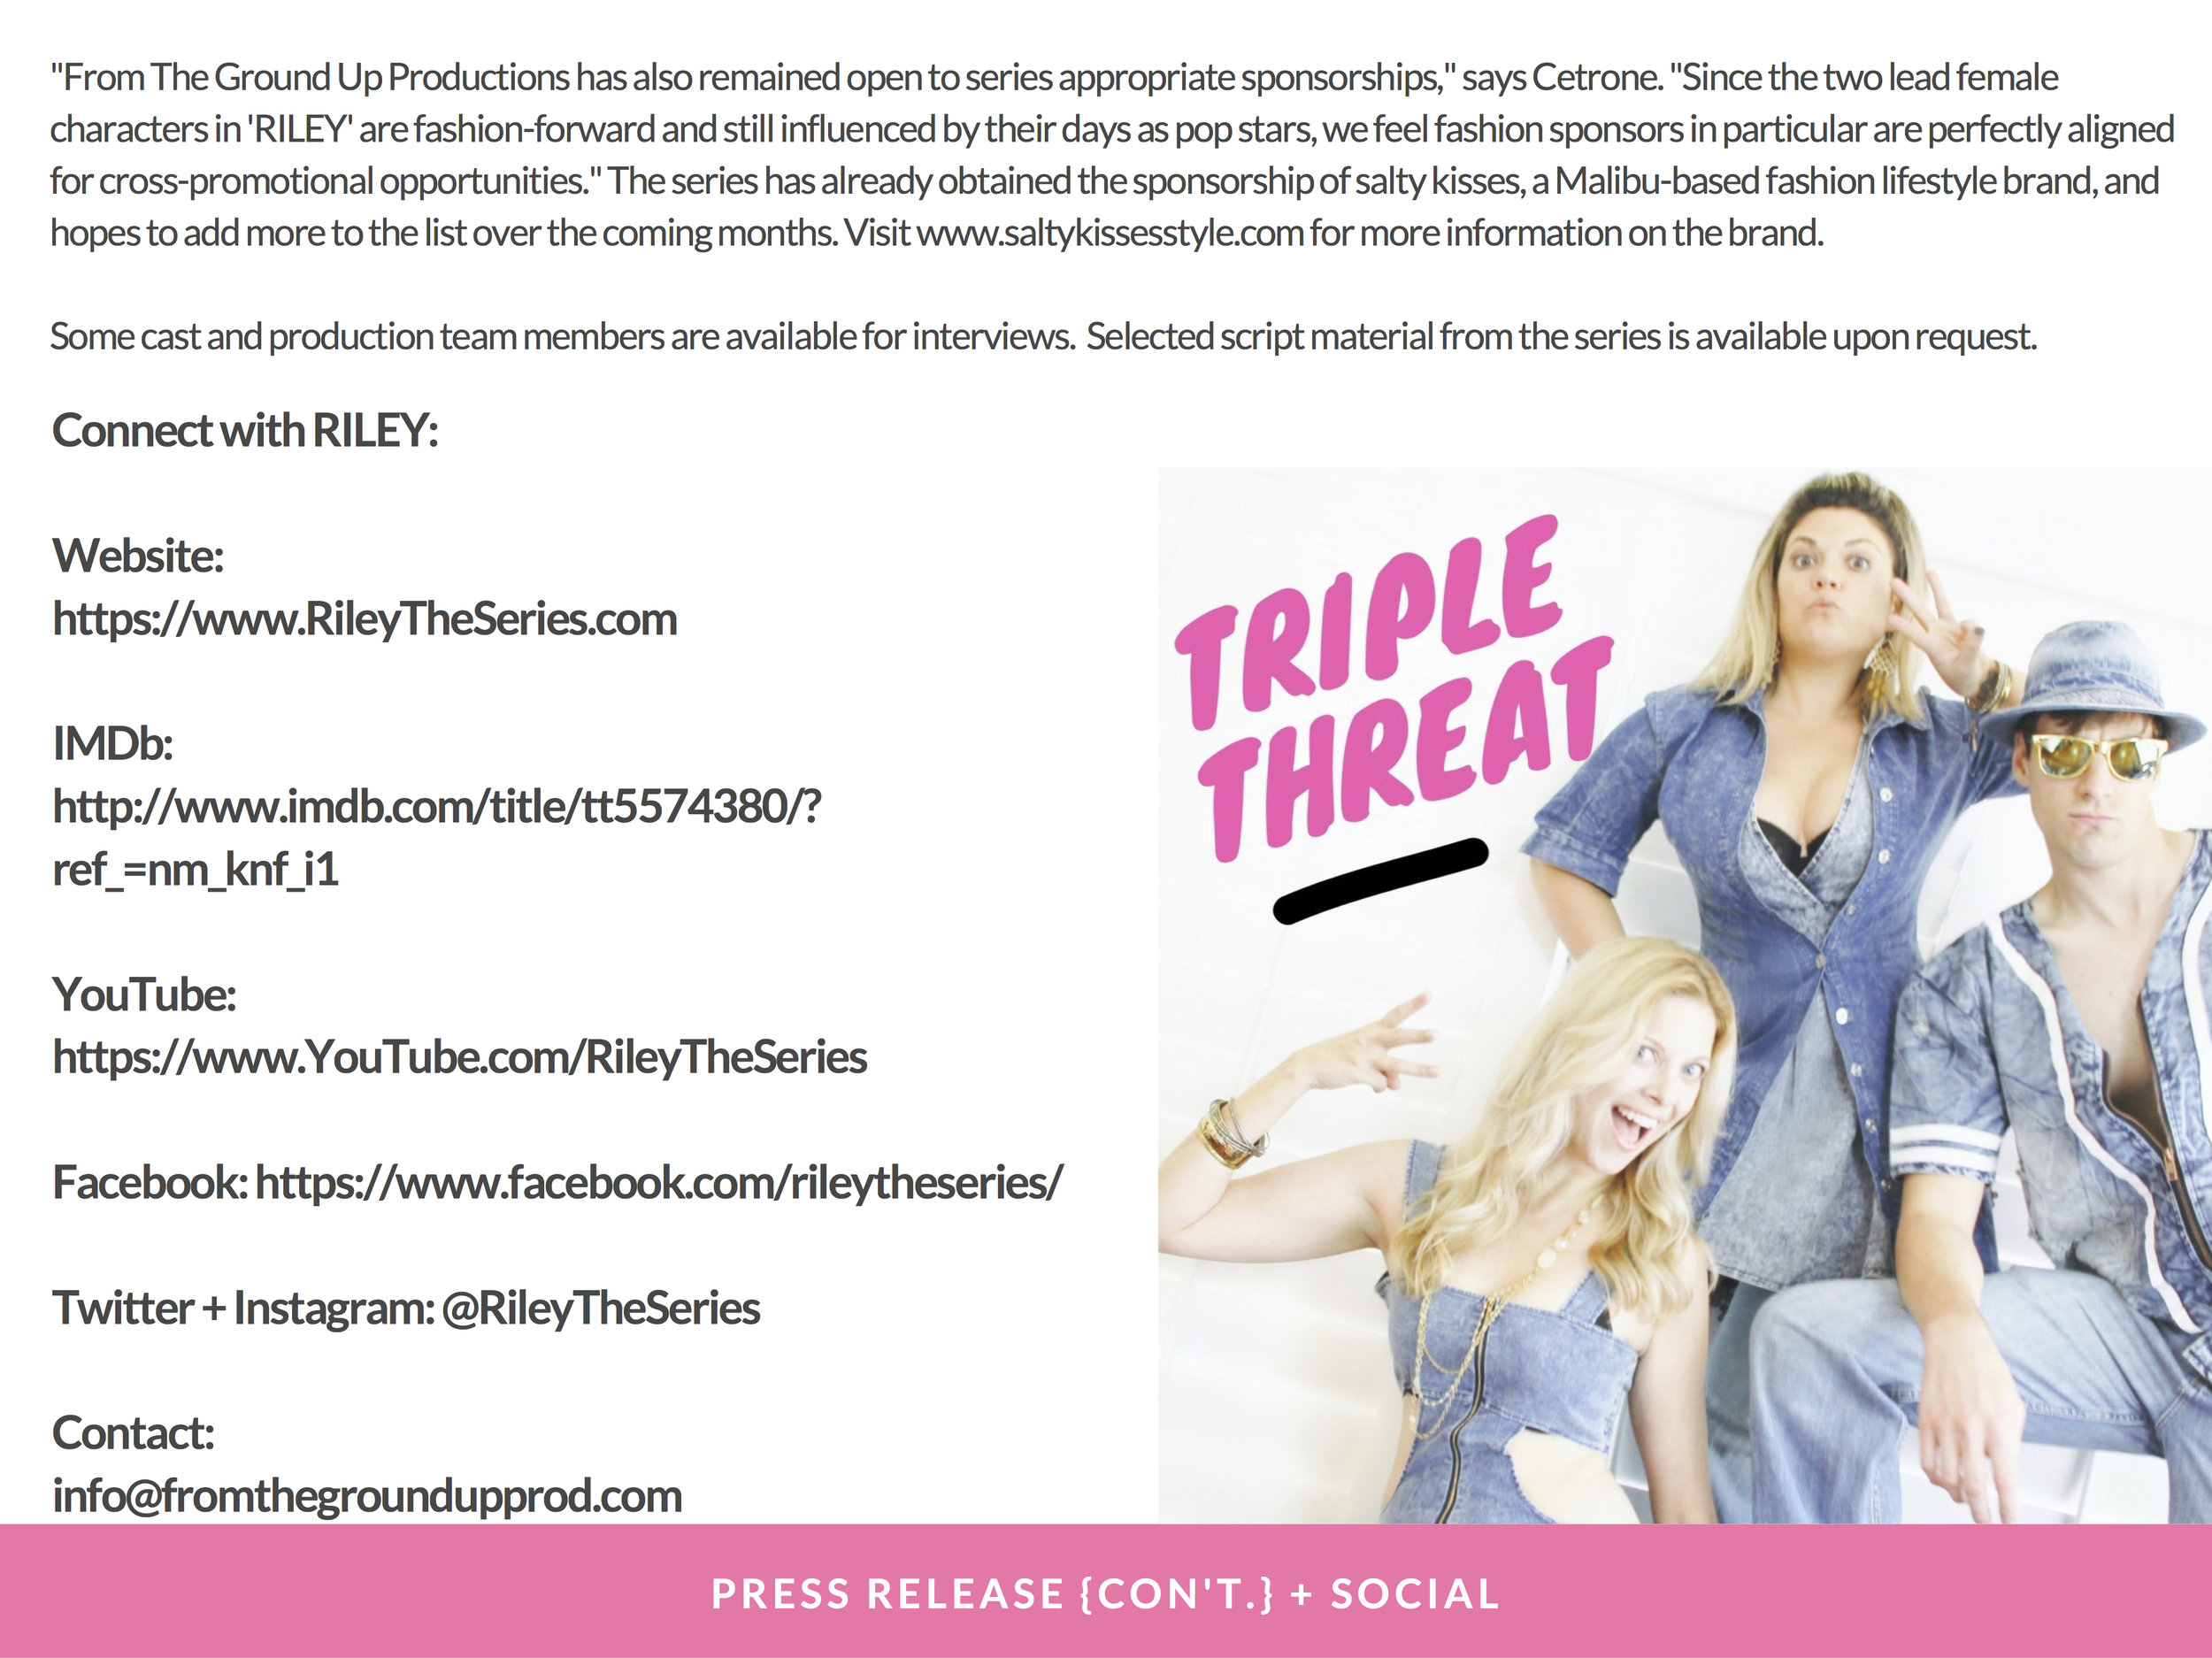 RILEY PRESS KIT - PAGE 15   (   PRESS RELEASE #1 con't.   )   - CLICK FOR HIGH RES JPEG